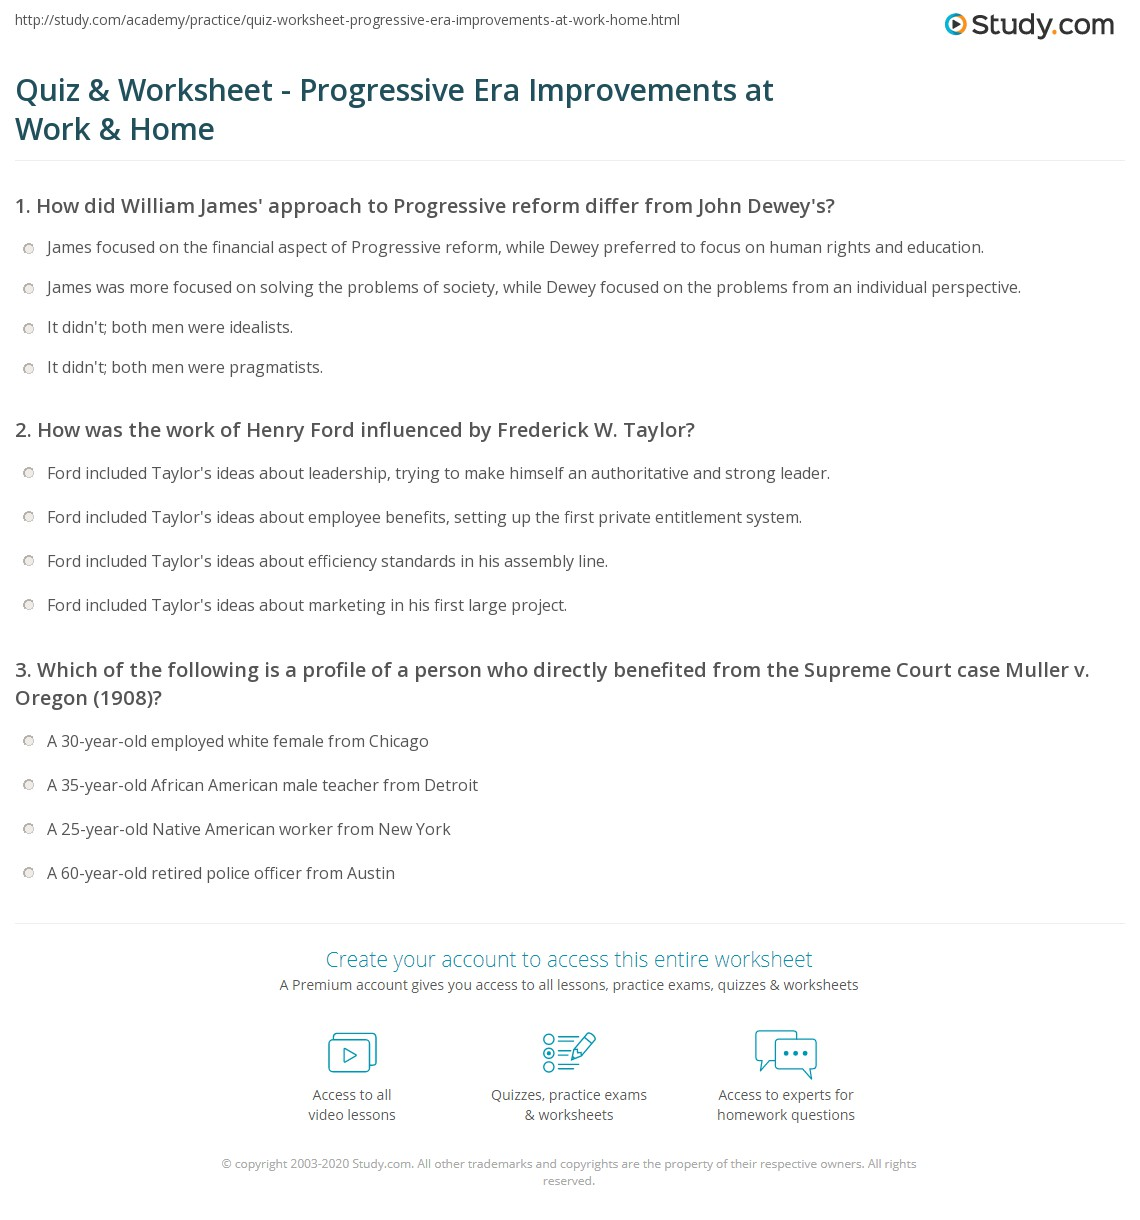 Print Work and Home Improvements of the Progressive Era Worksheet